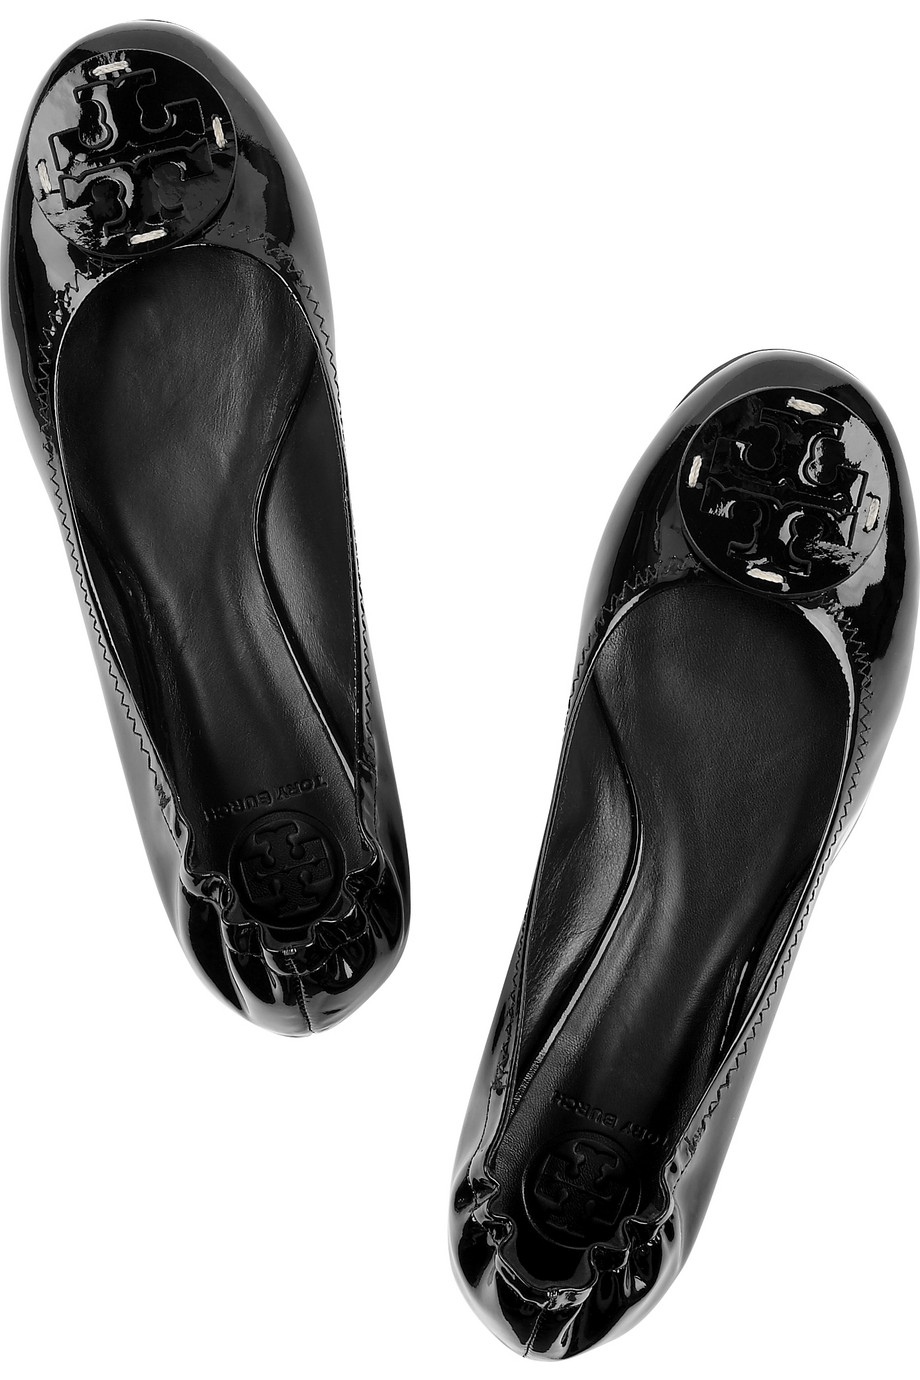 Tory Burch Reva Patent Leather Ballerina Flats In Black Lyst